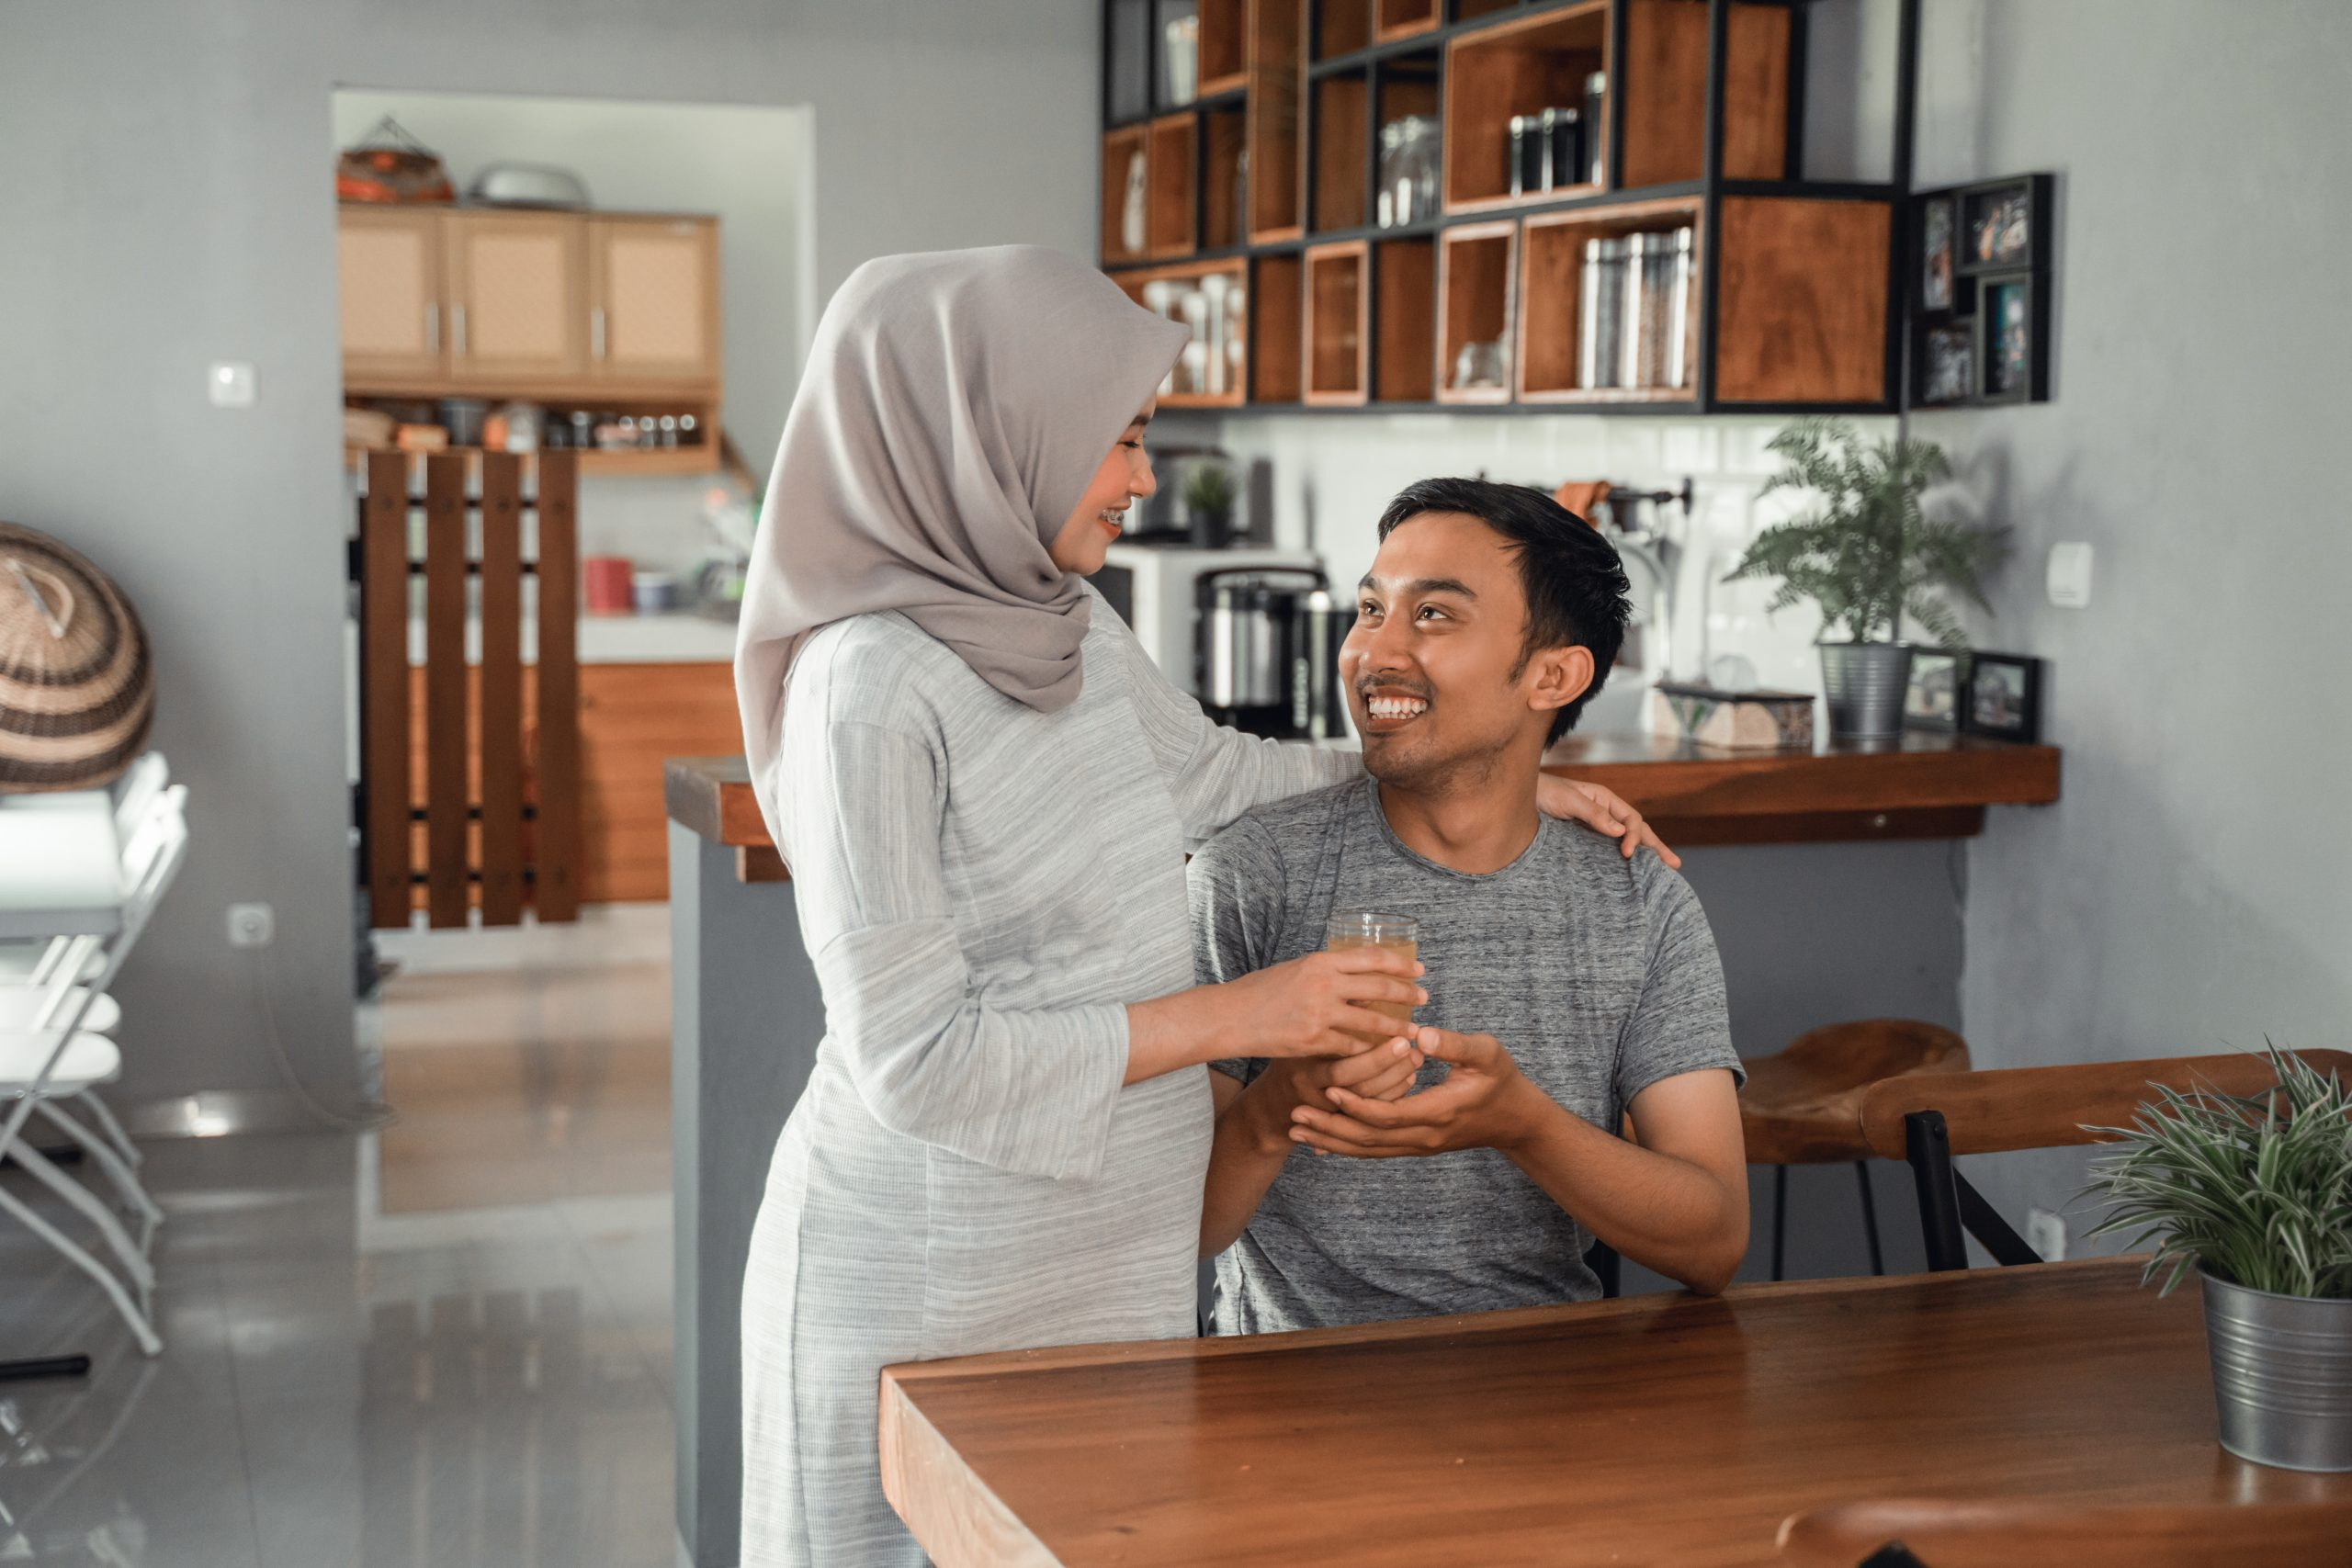 muslim-woman-served-her-husband-with-fruit-juice-scaled.jpg